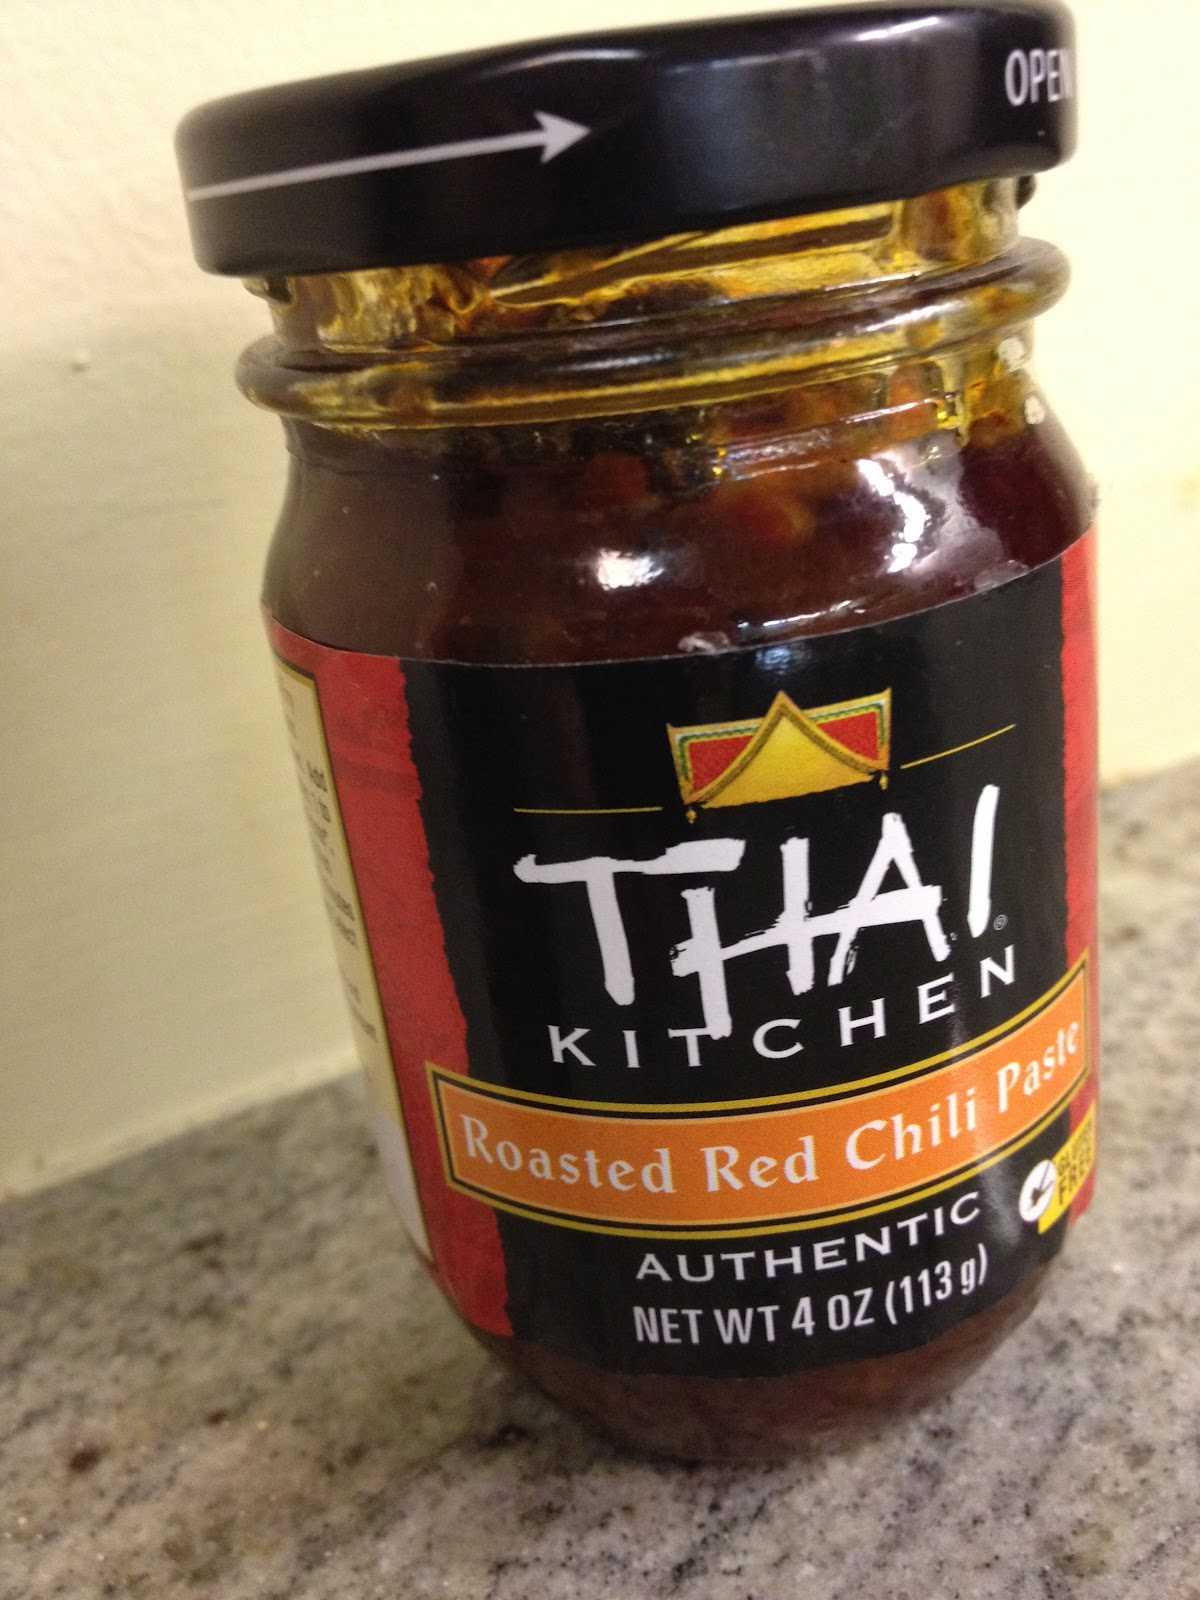 Roasted Red Chili Paste Nk